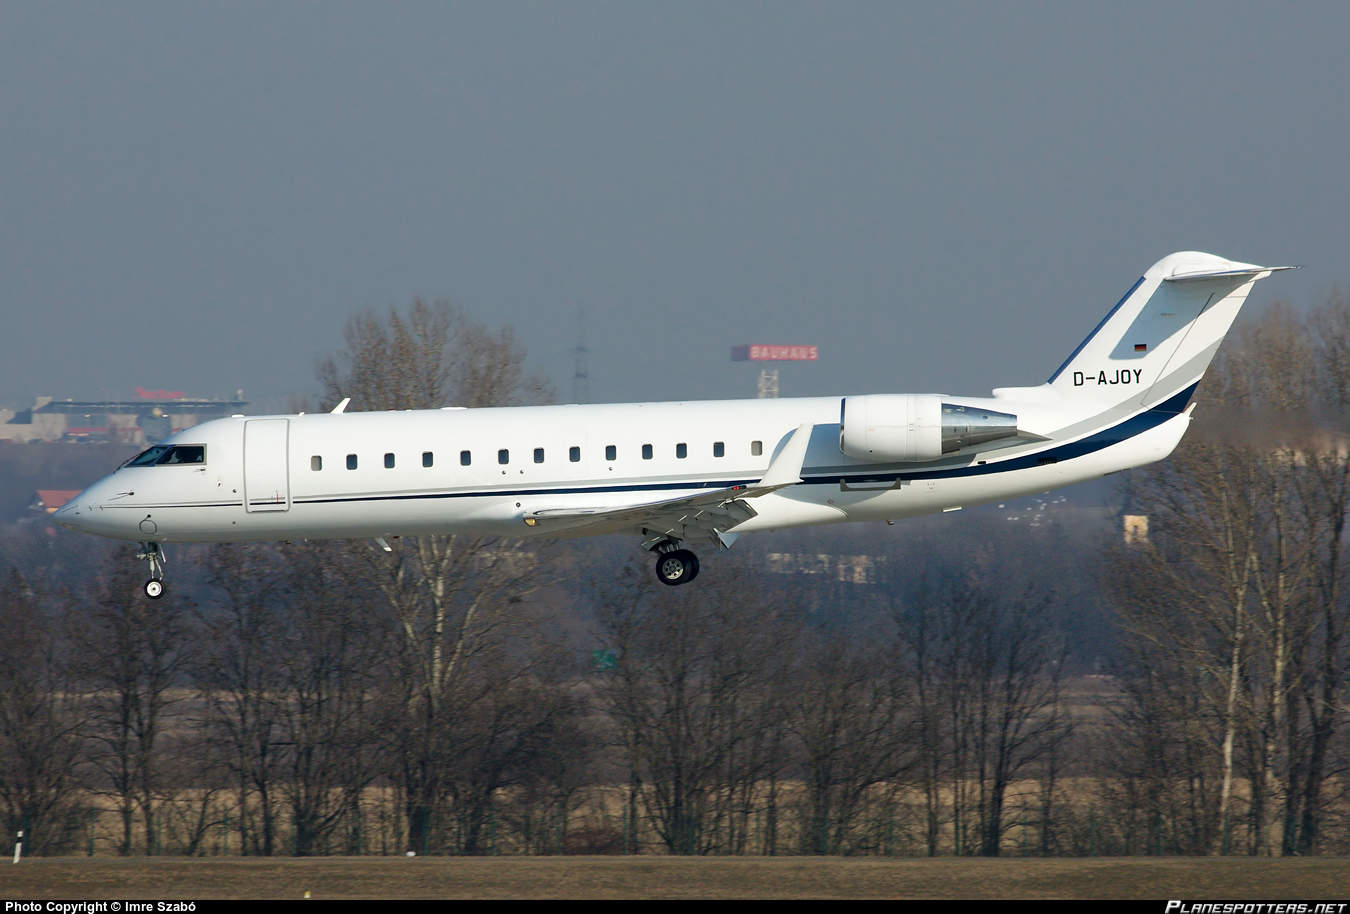 Elytra CL-600-2B19 losses all airspeed indications on landing